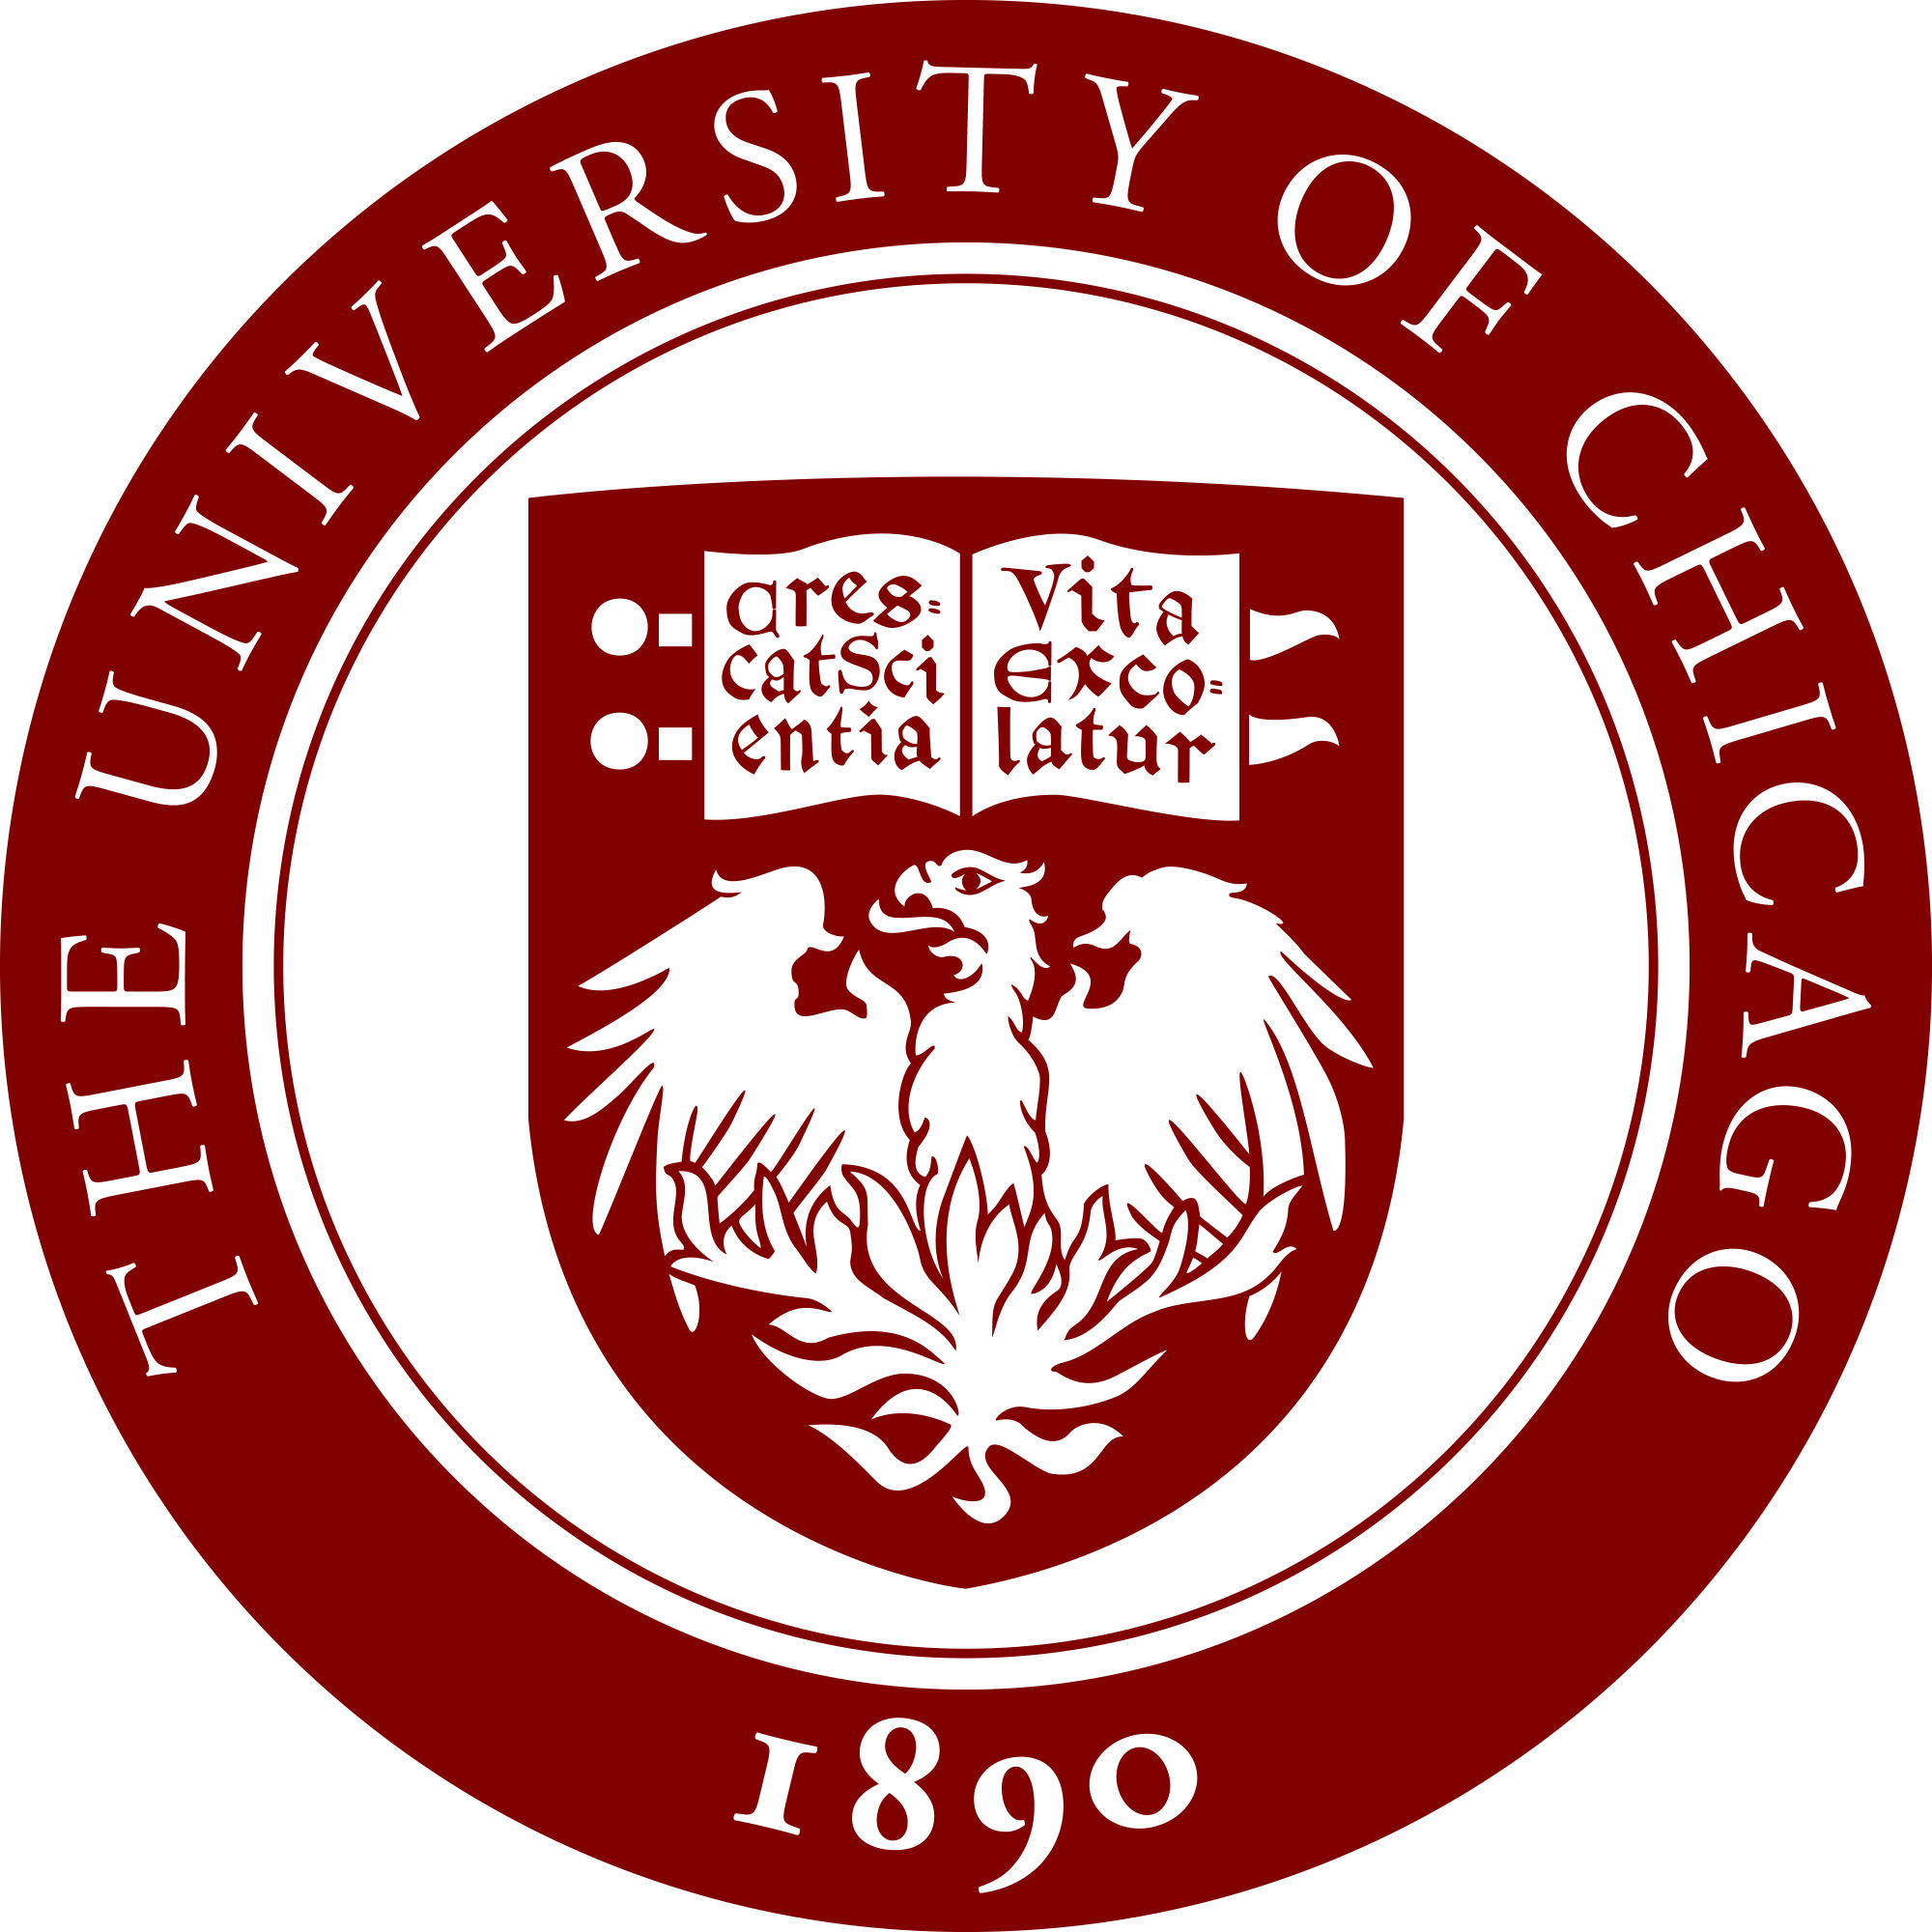 U of Chicago officials release video showing officer shooting student